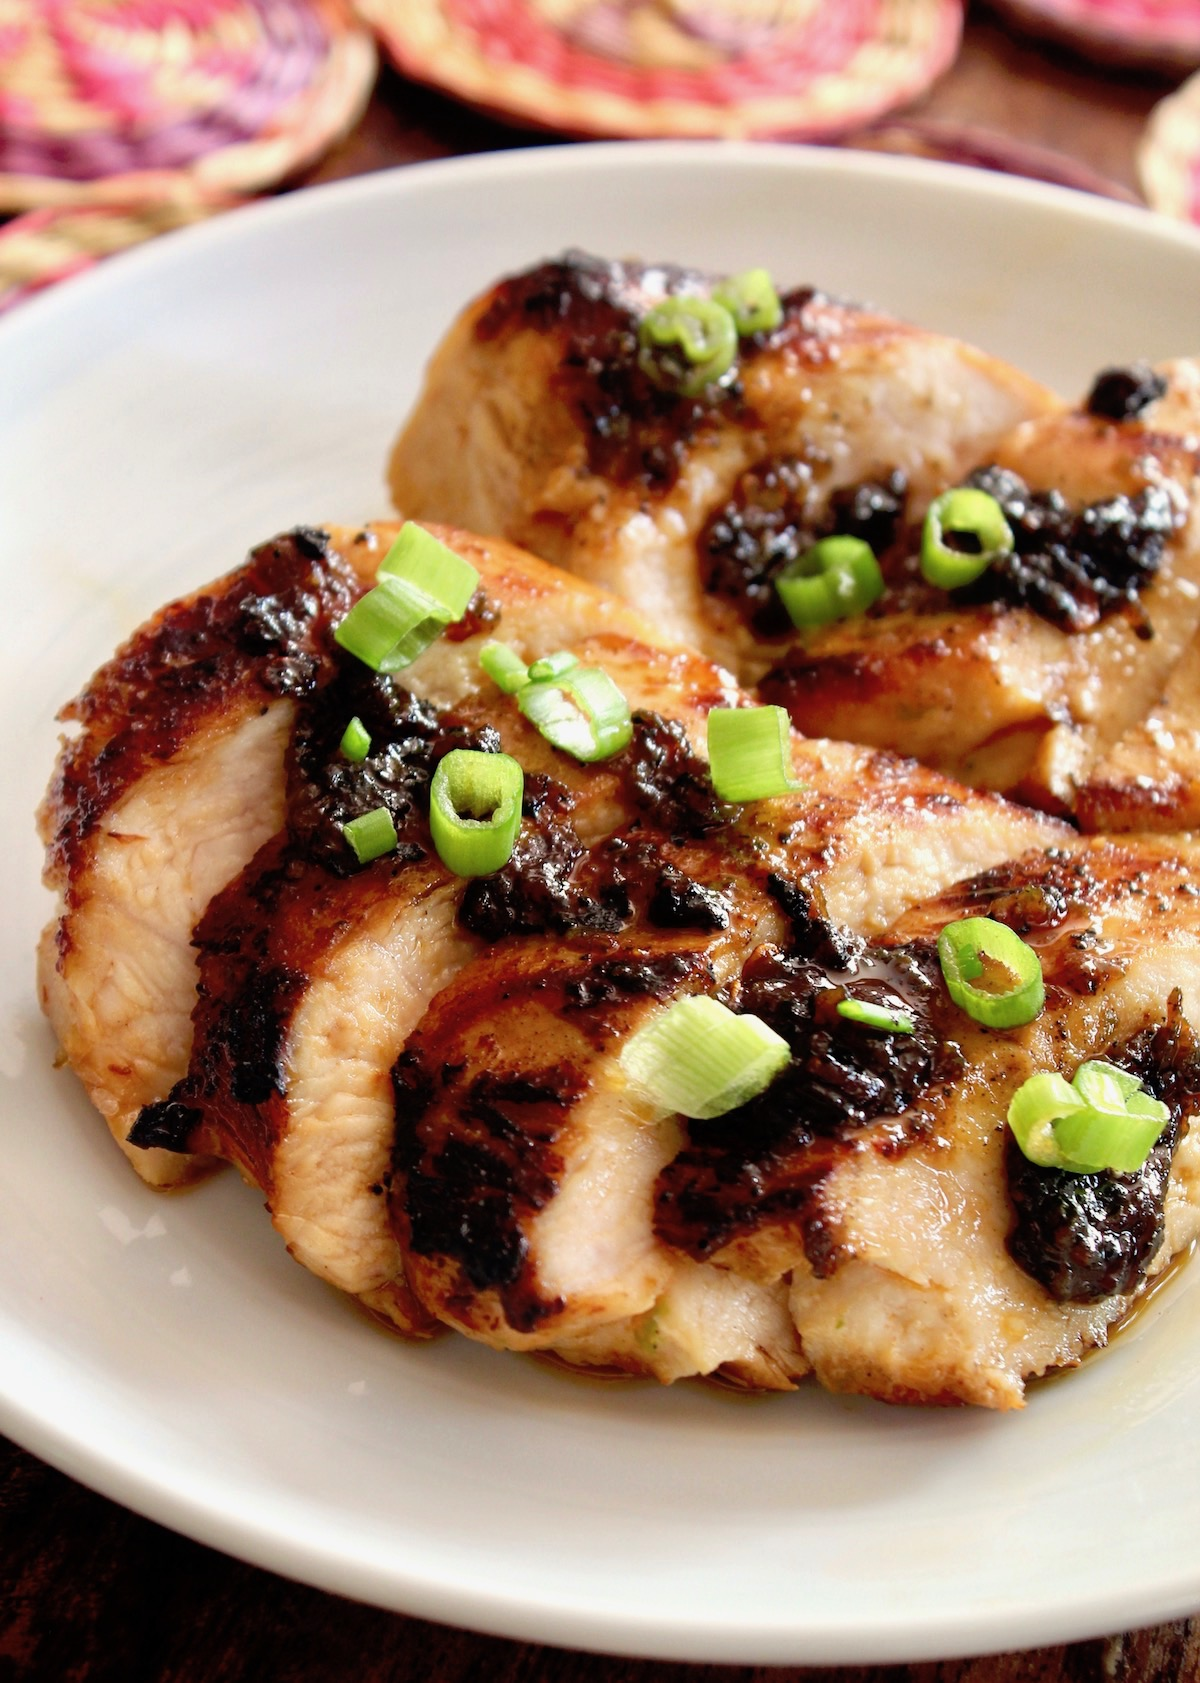 Sliced tequila chicken on a white plate